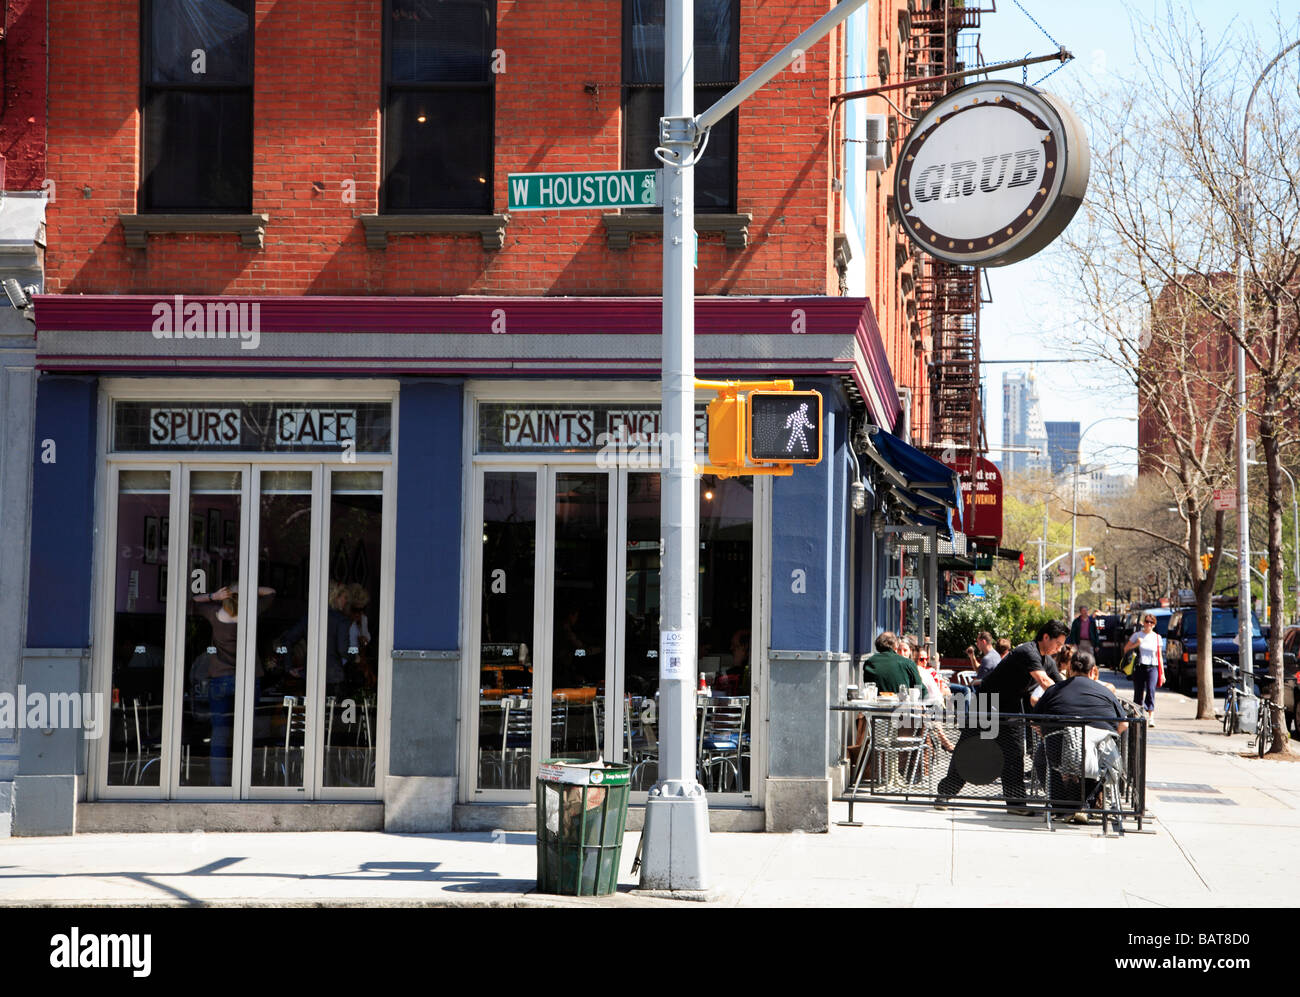 Silver Spurs Cafe Greenwich Village New York City - Stock Image